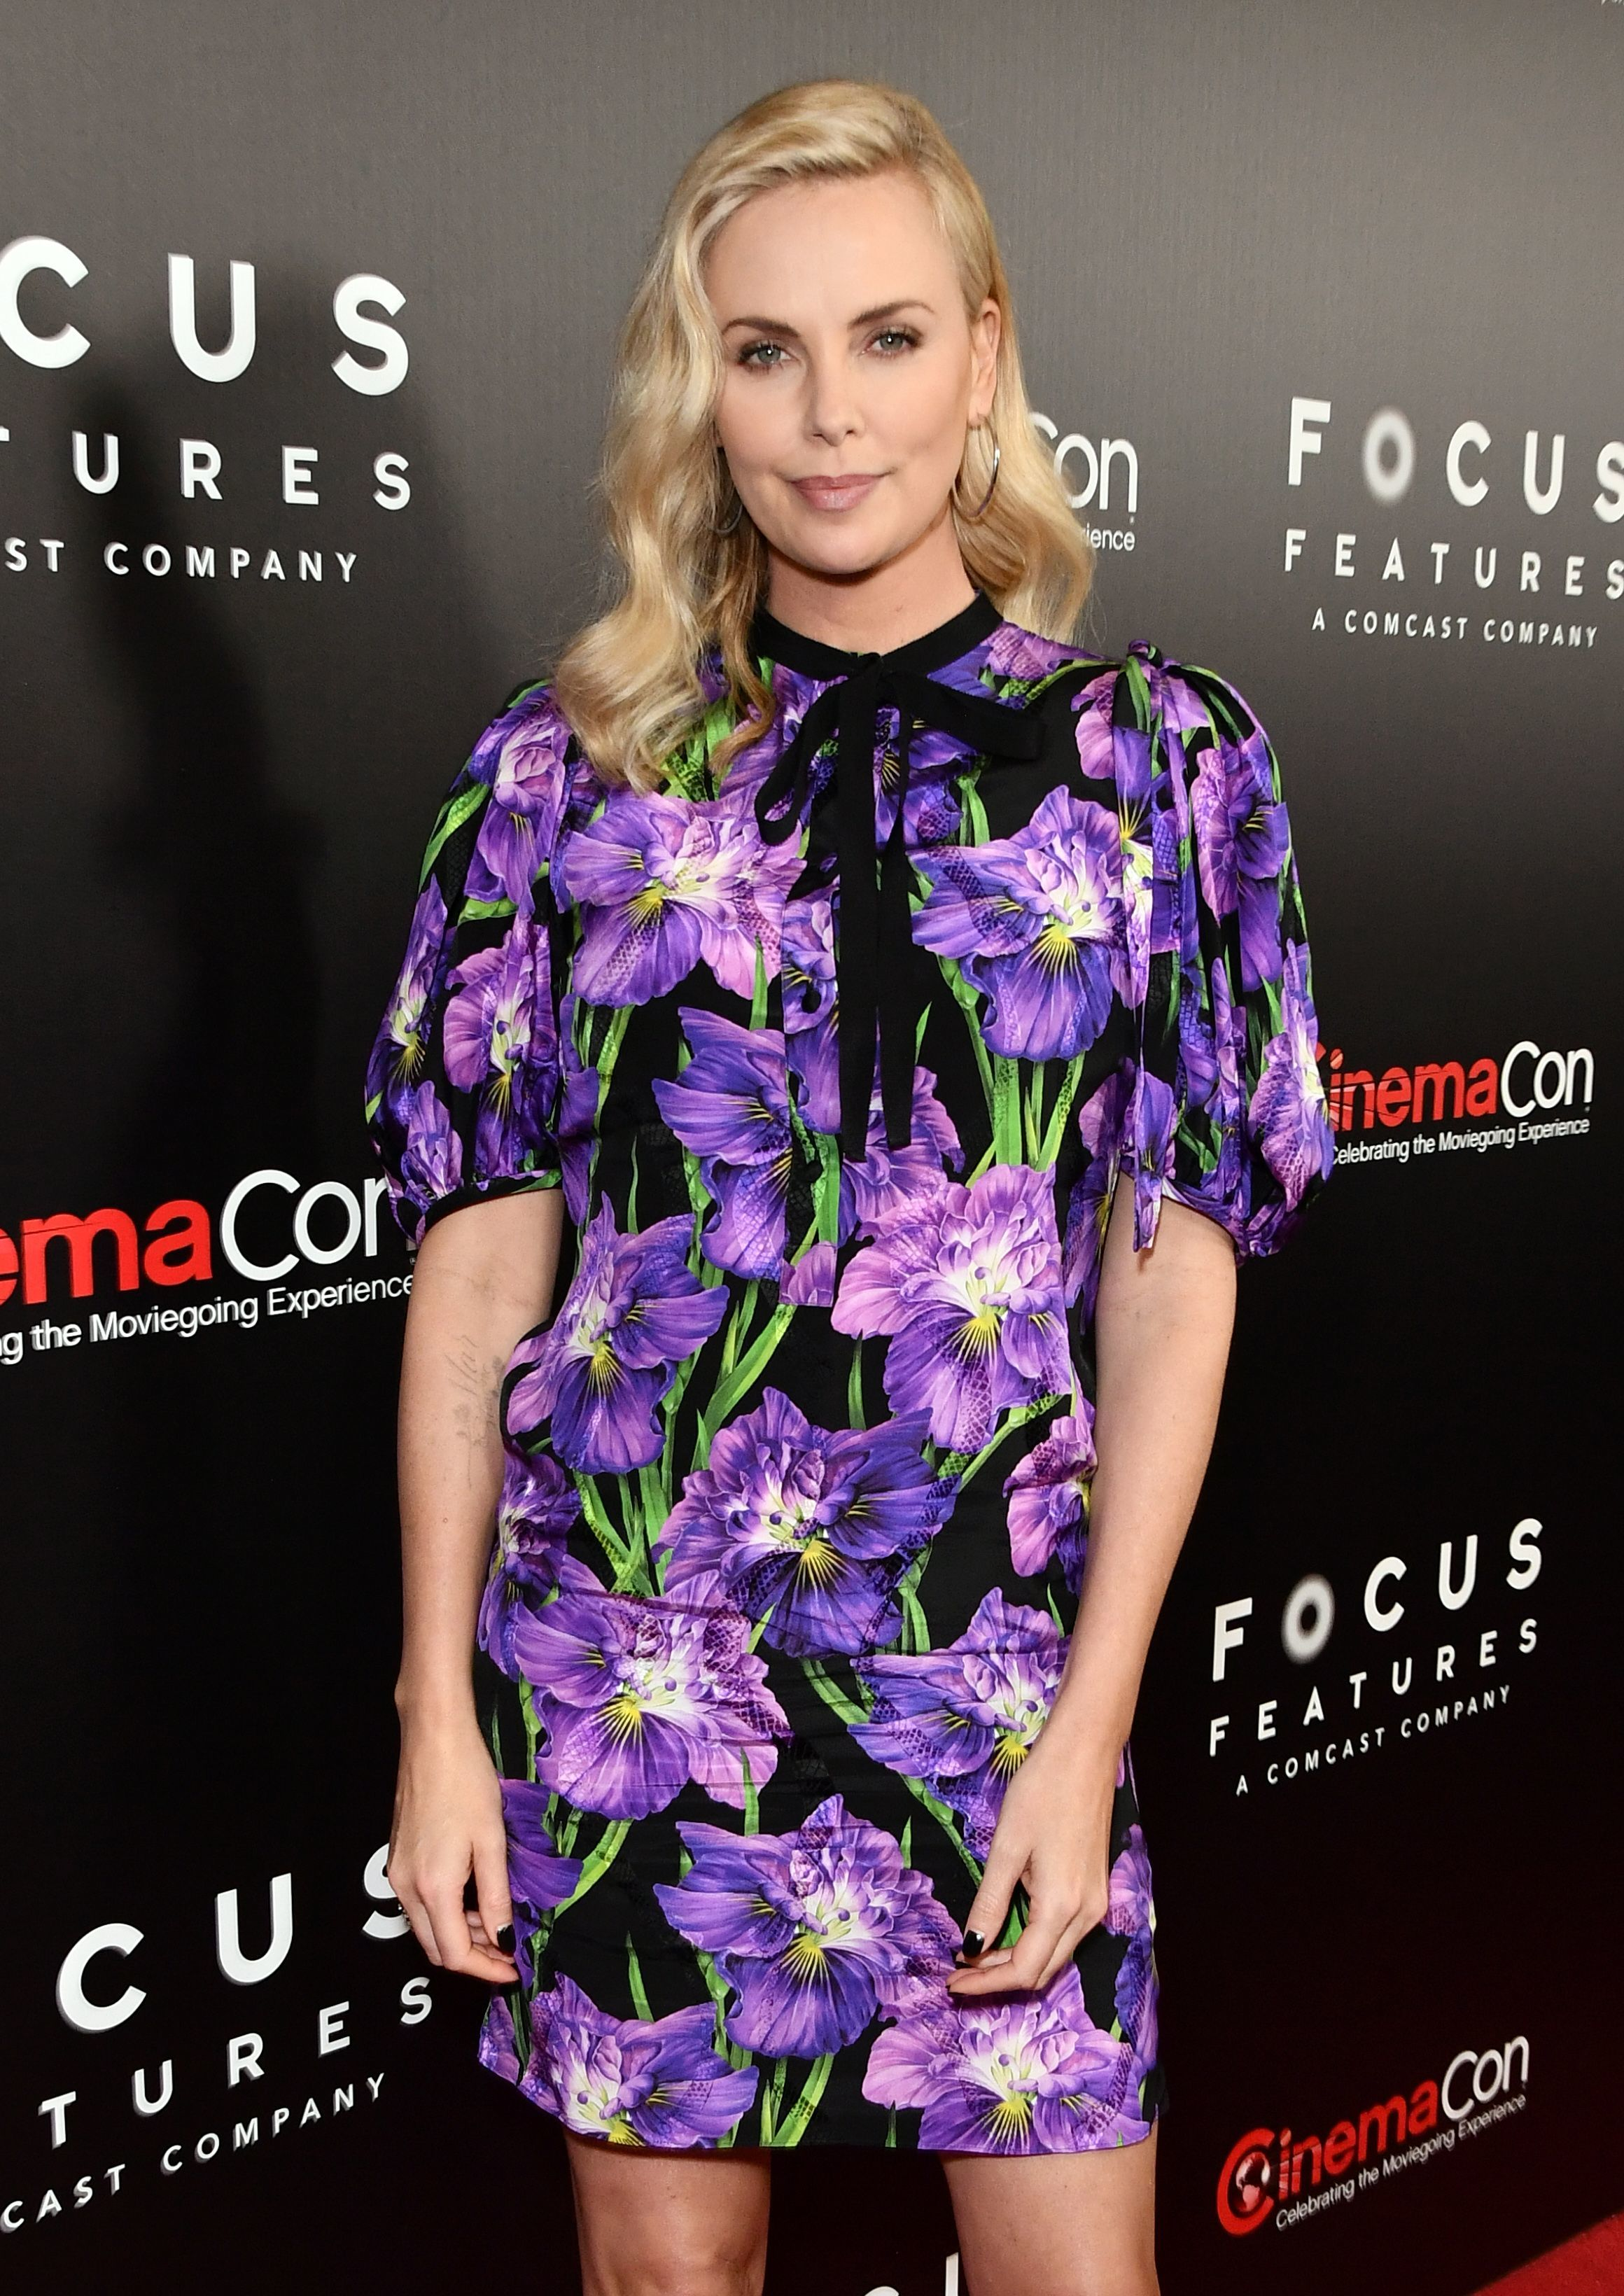 Charlize Theron: Good tipper